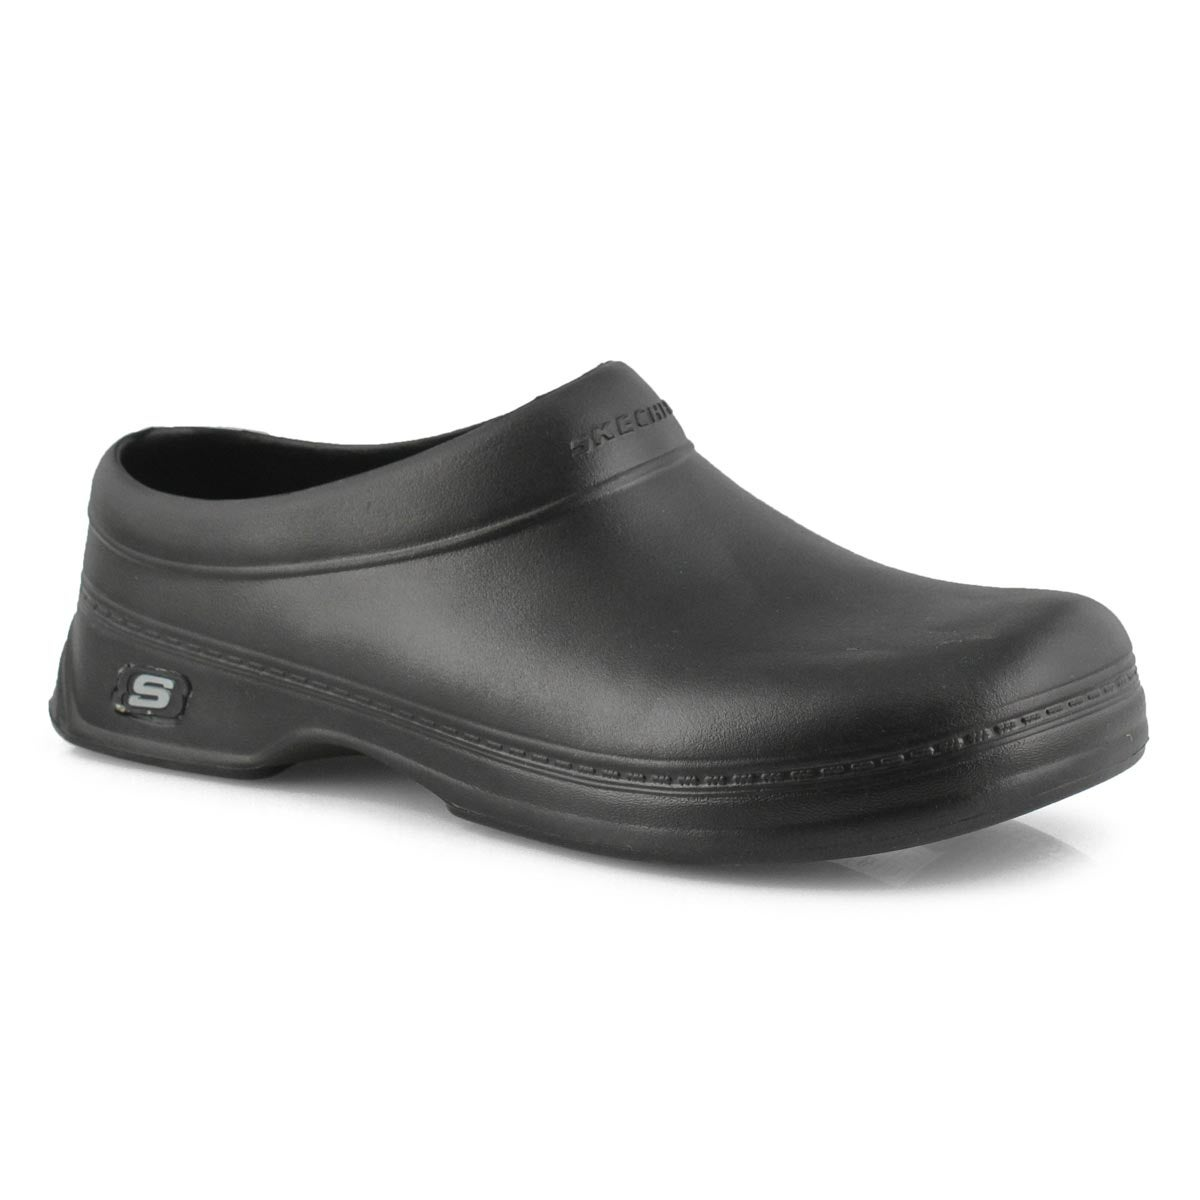 Men's OSWALD BALDER black slip-resistant clogs